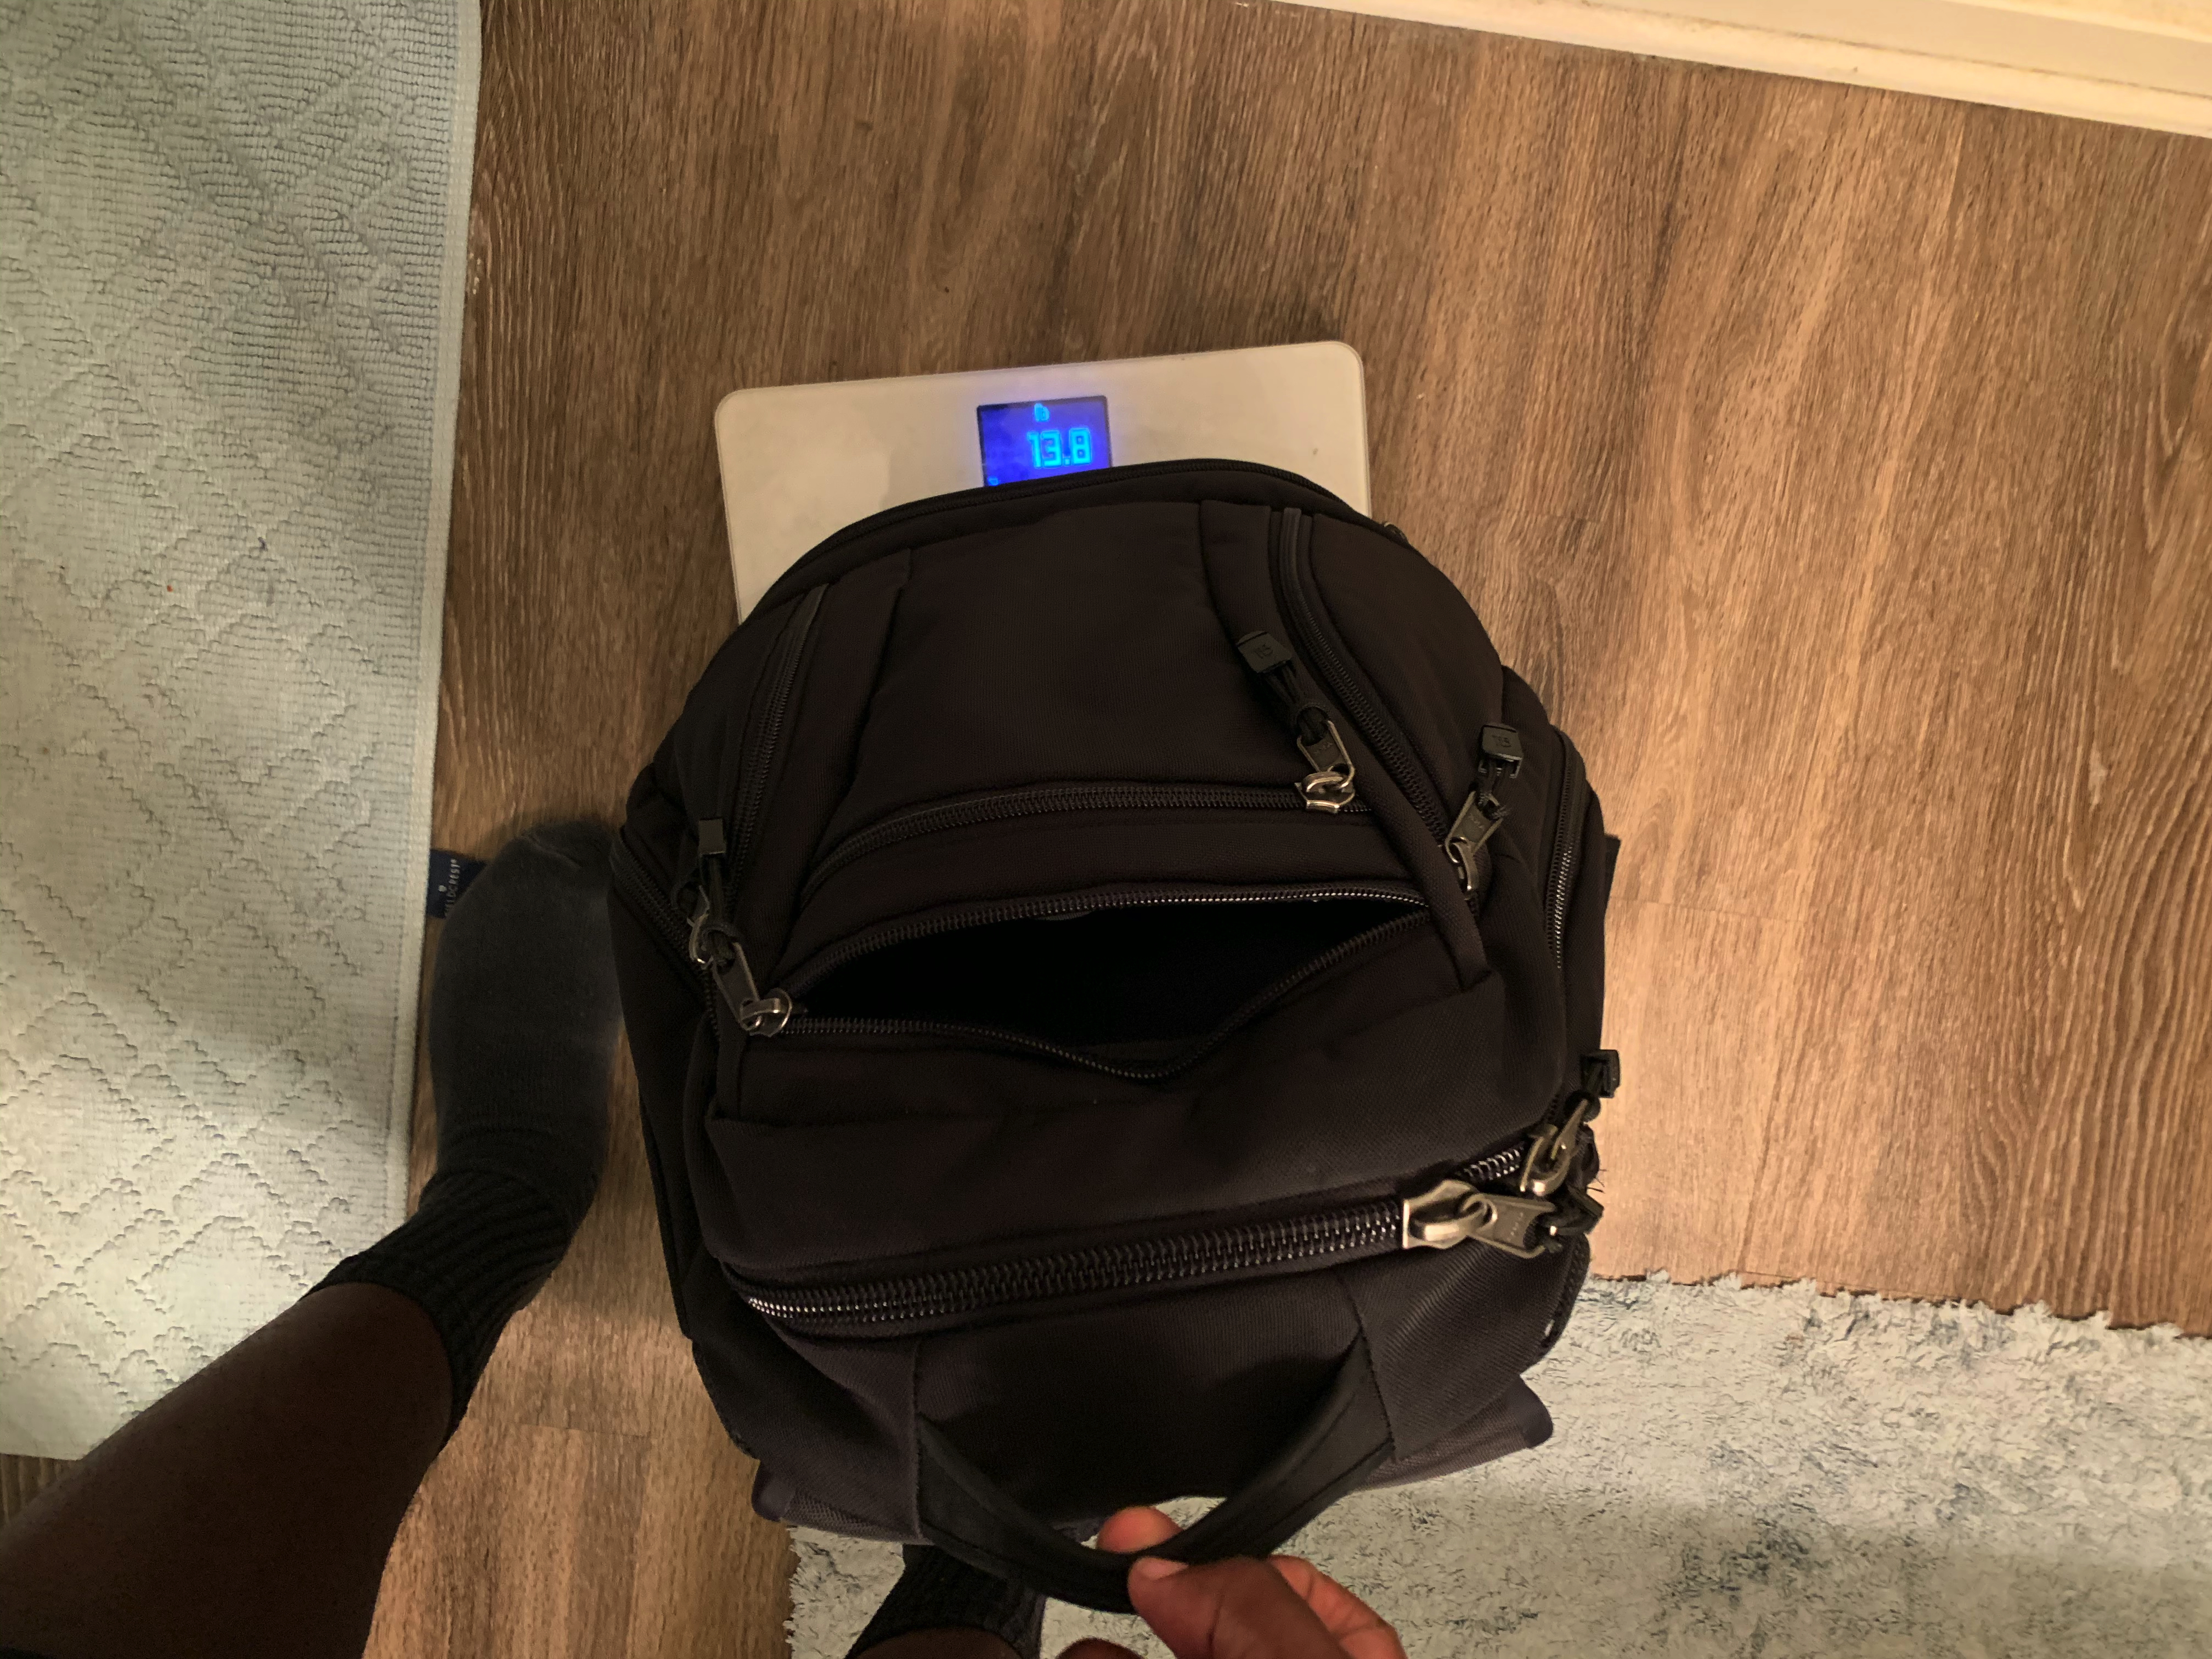 My Initial Thoughts on the Tom Bihn Synik 30 Bag